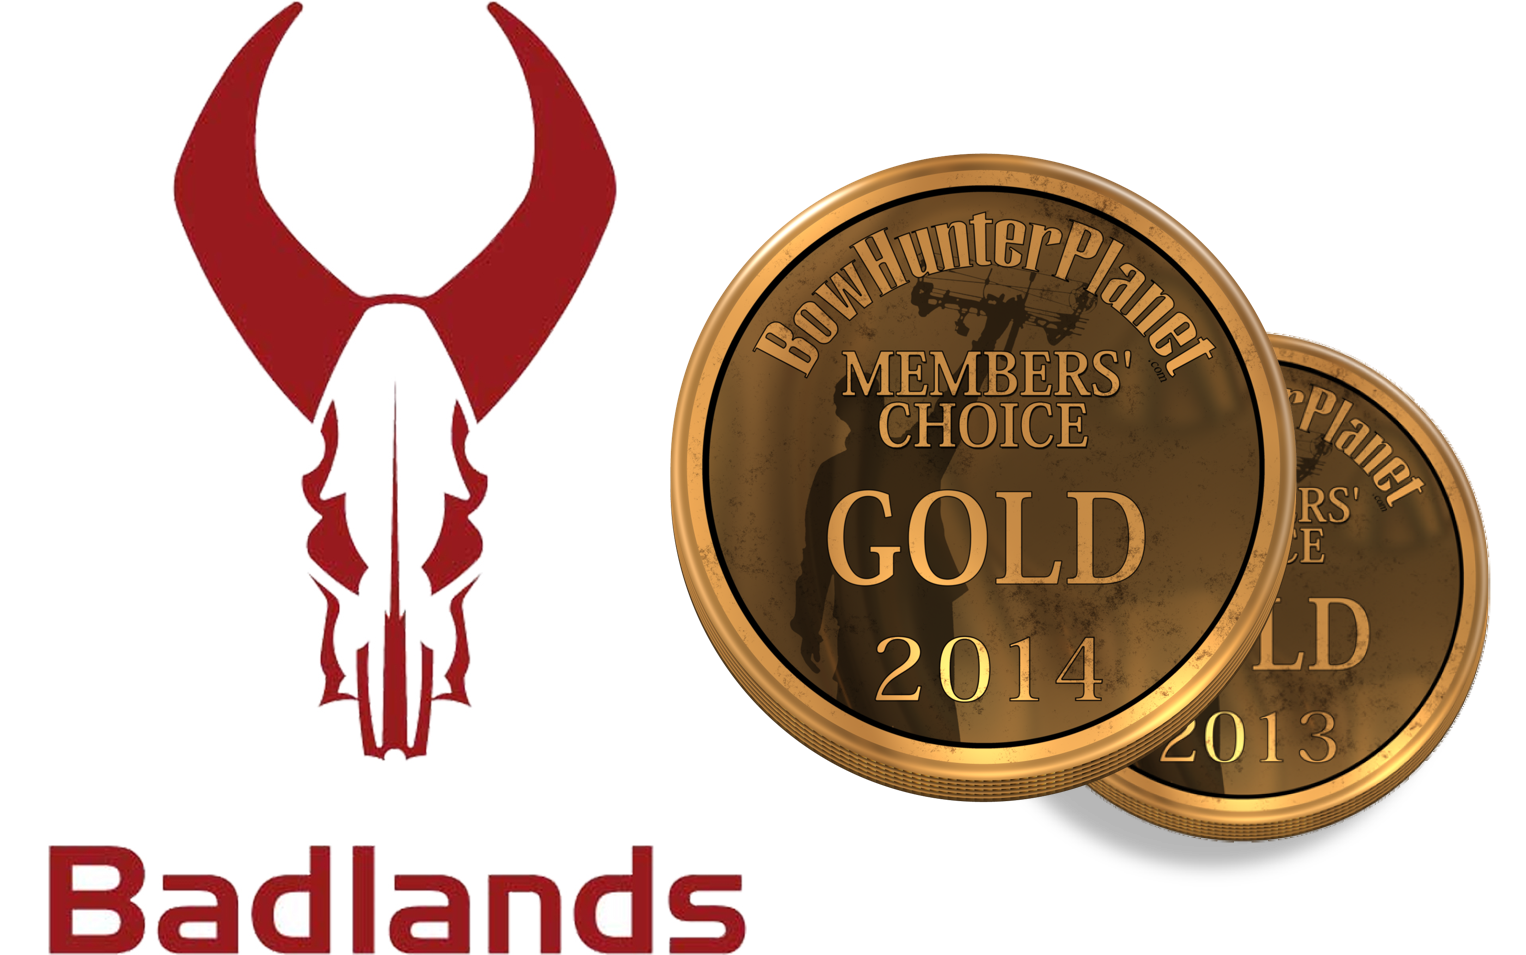 Badlands BowHunterPlanet - Members choice Gold 2011